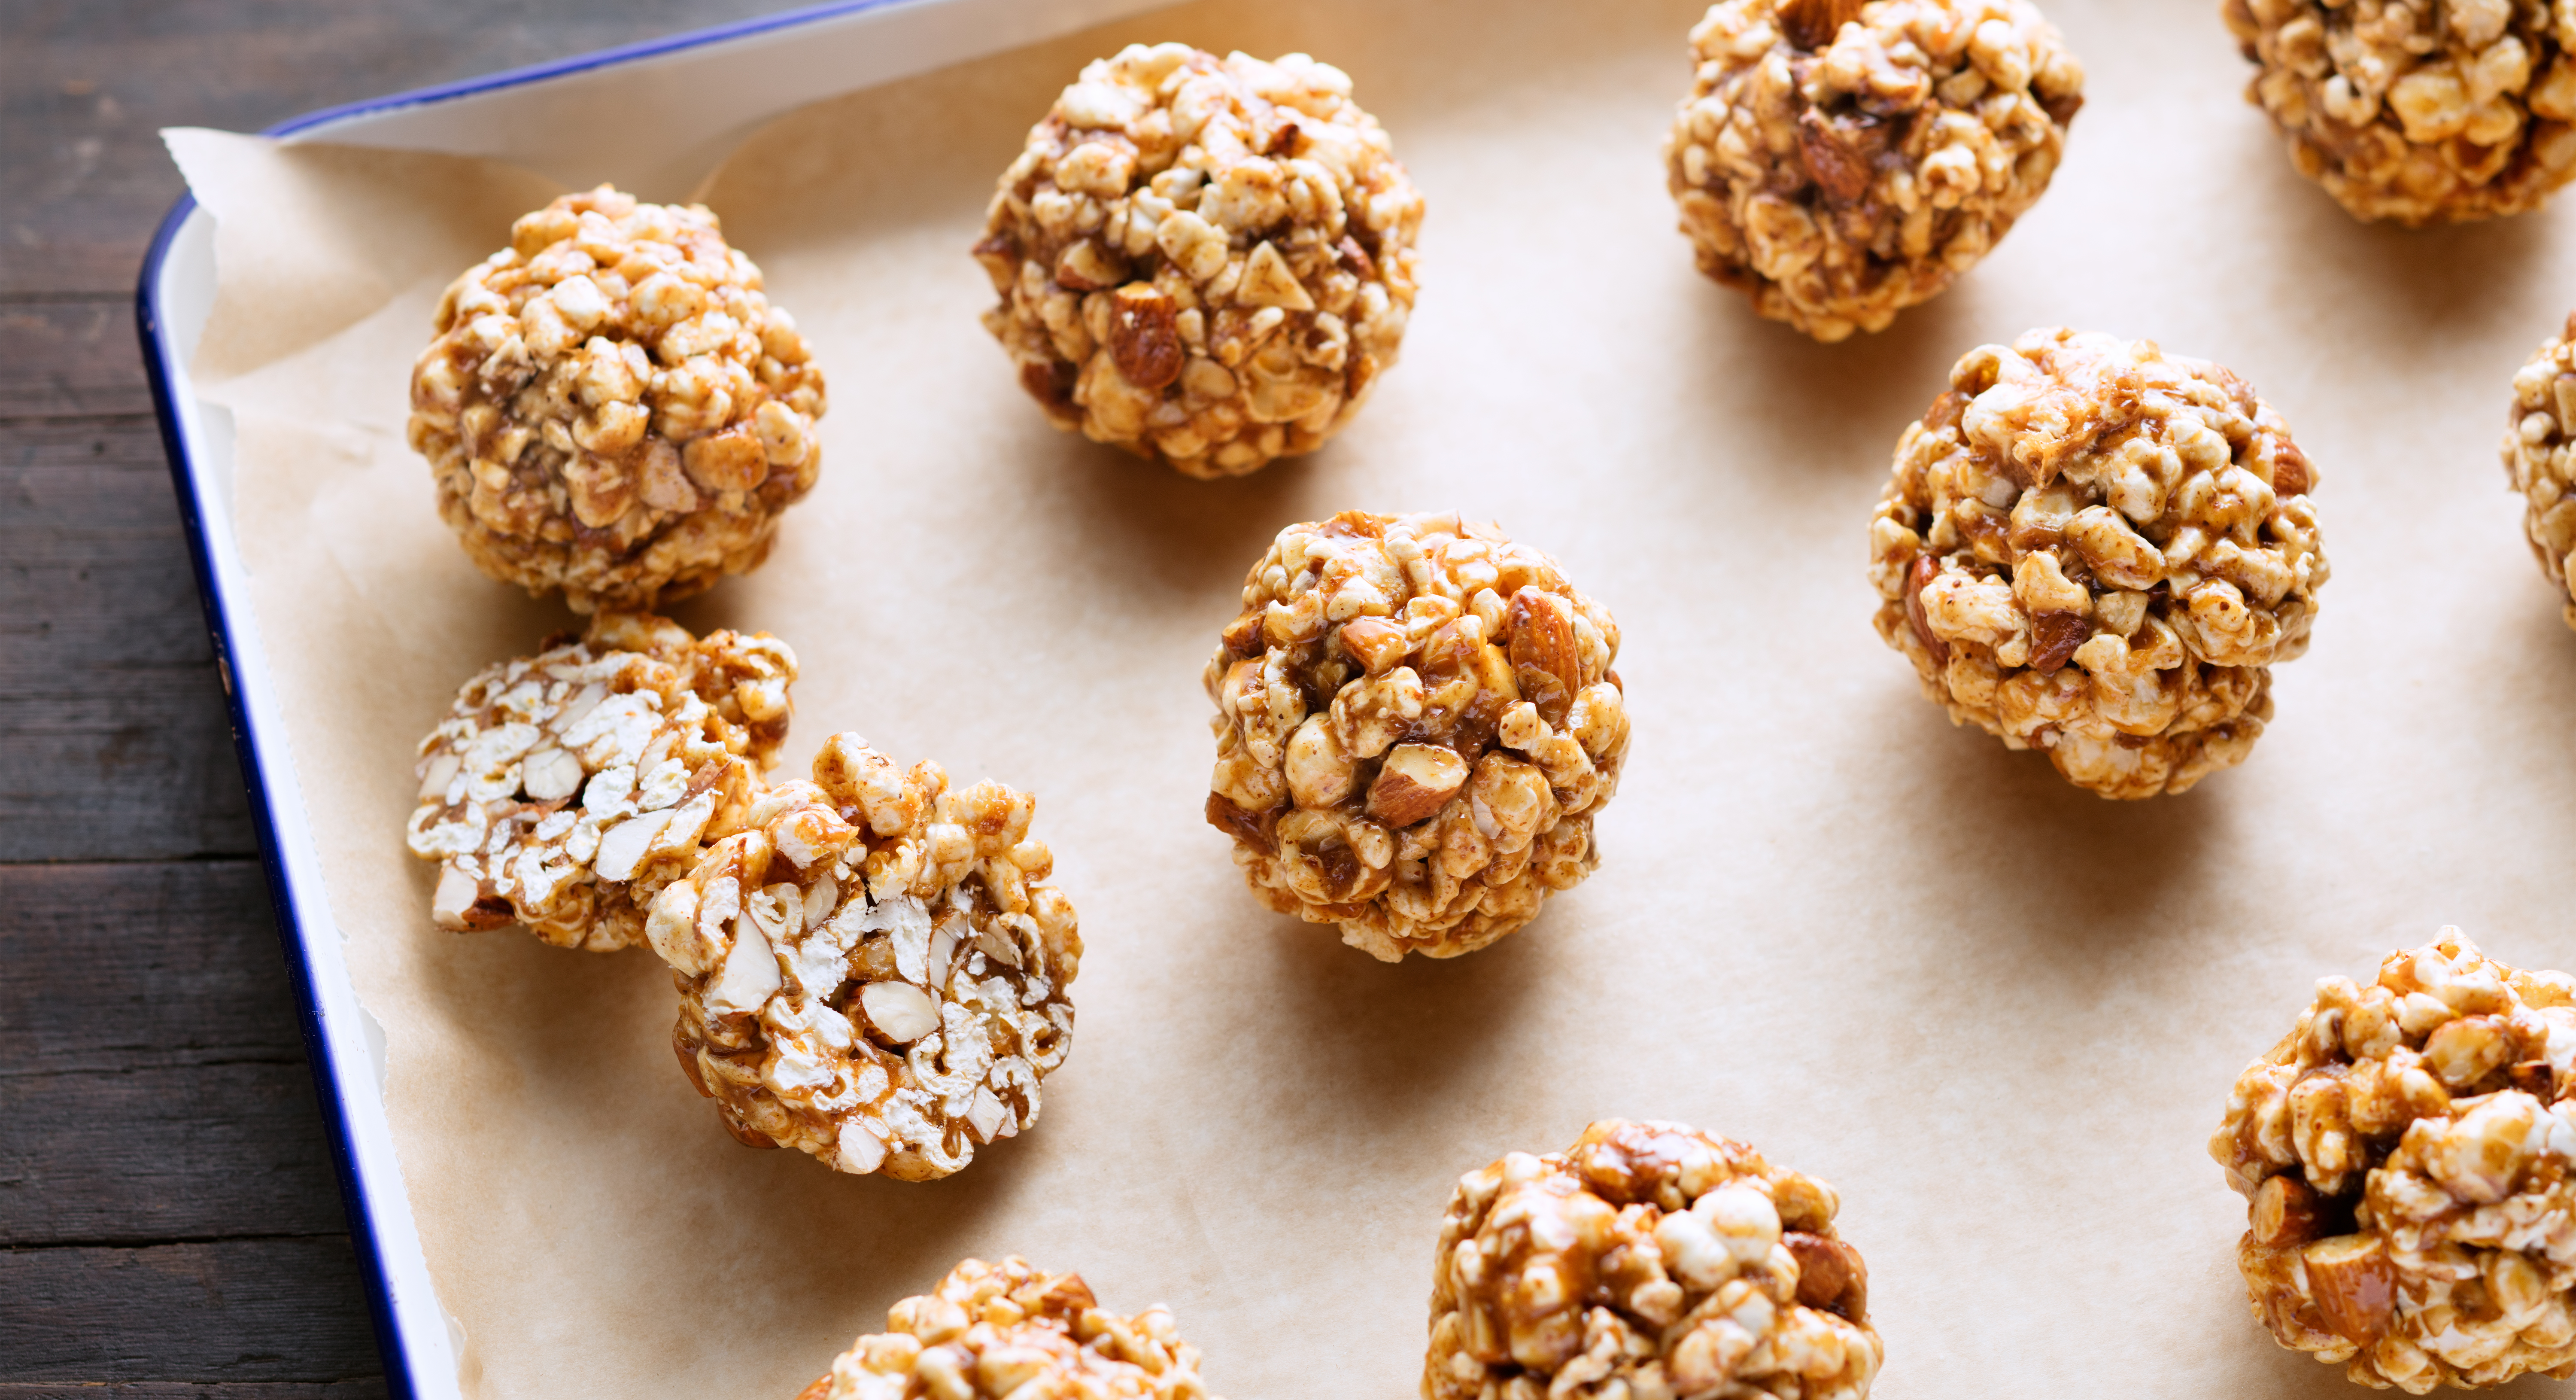 Light, Crunchy, and Sweet: What's Not to Like About Honey Almond Popcorn Balls?